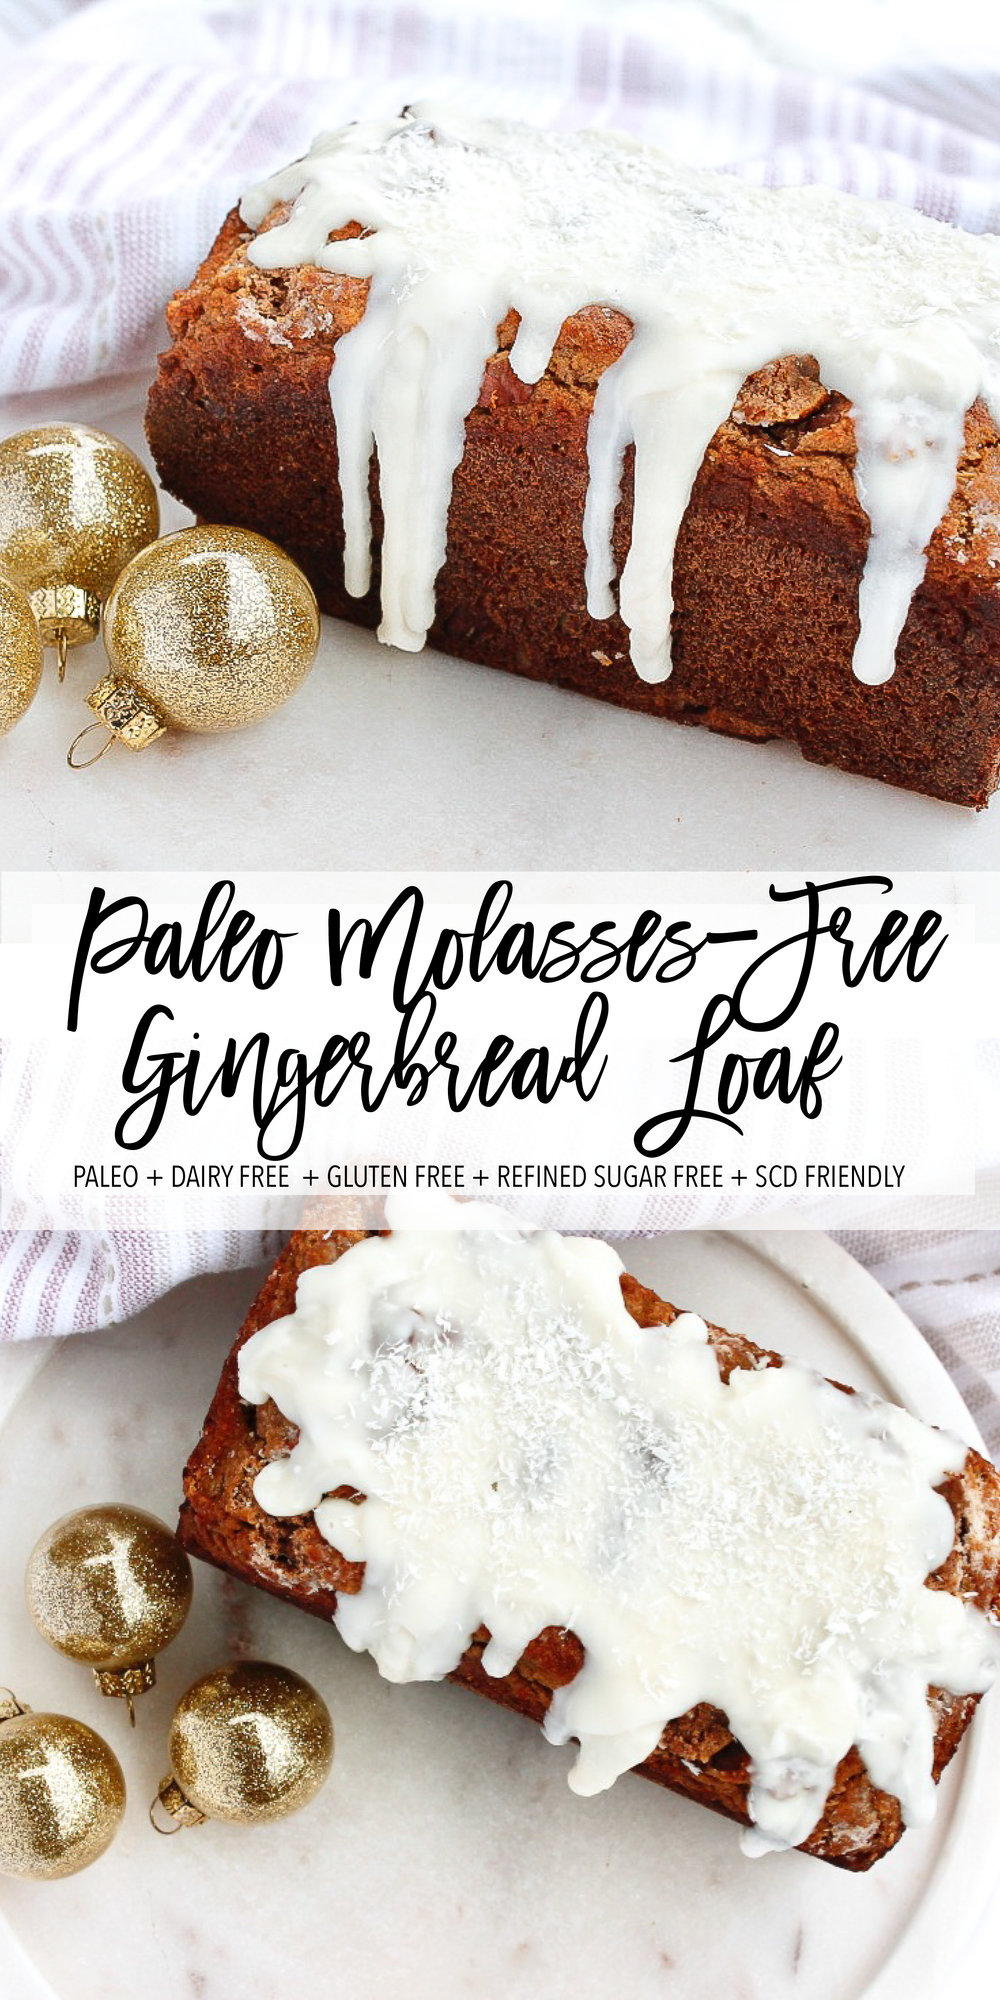 MOLASSES-FREE PALEO GINGERBREAD LOAF